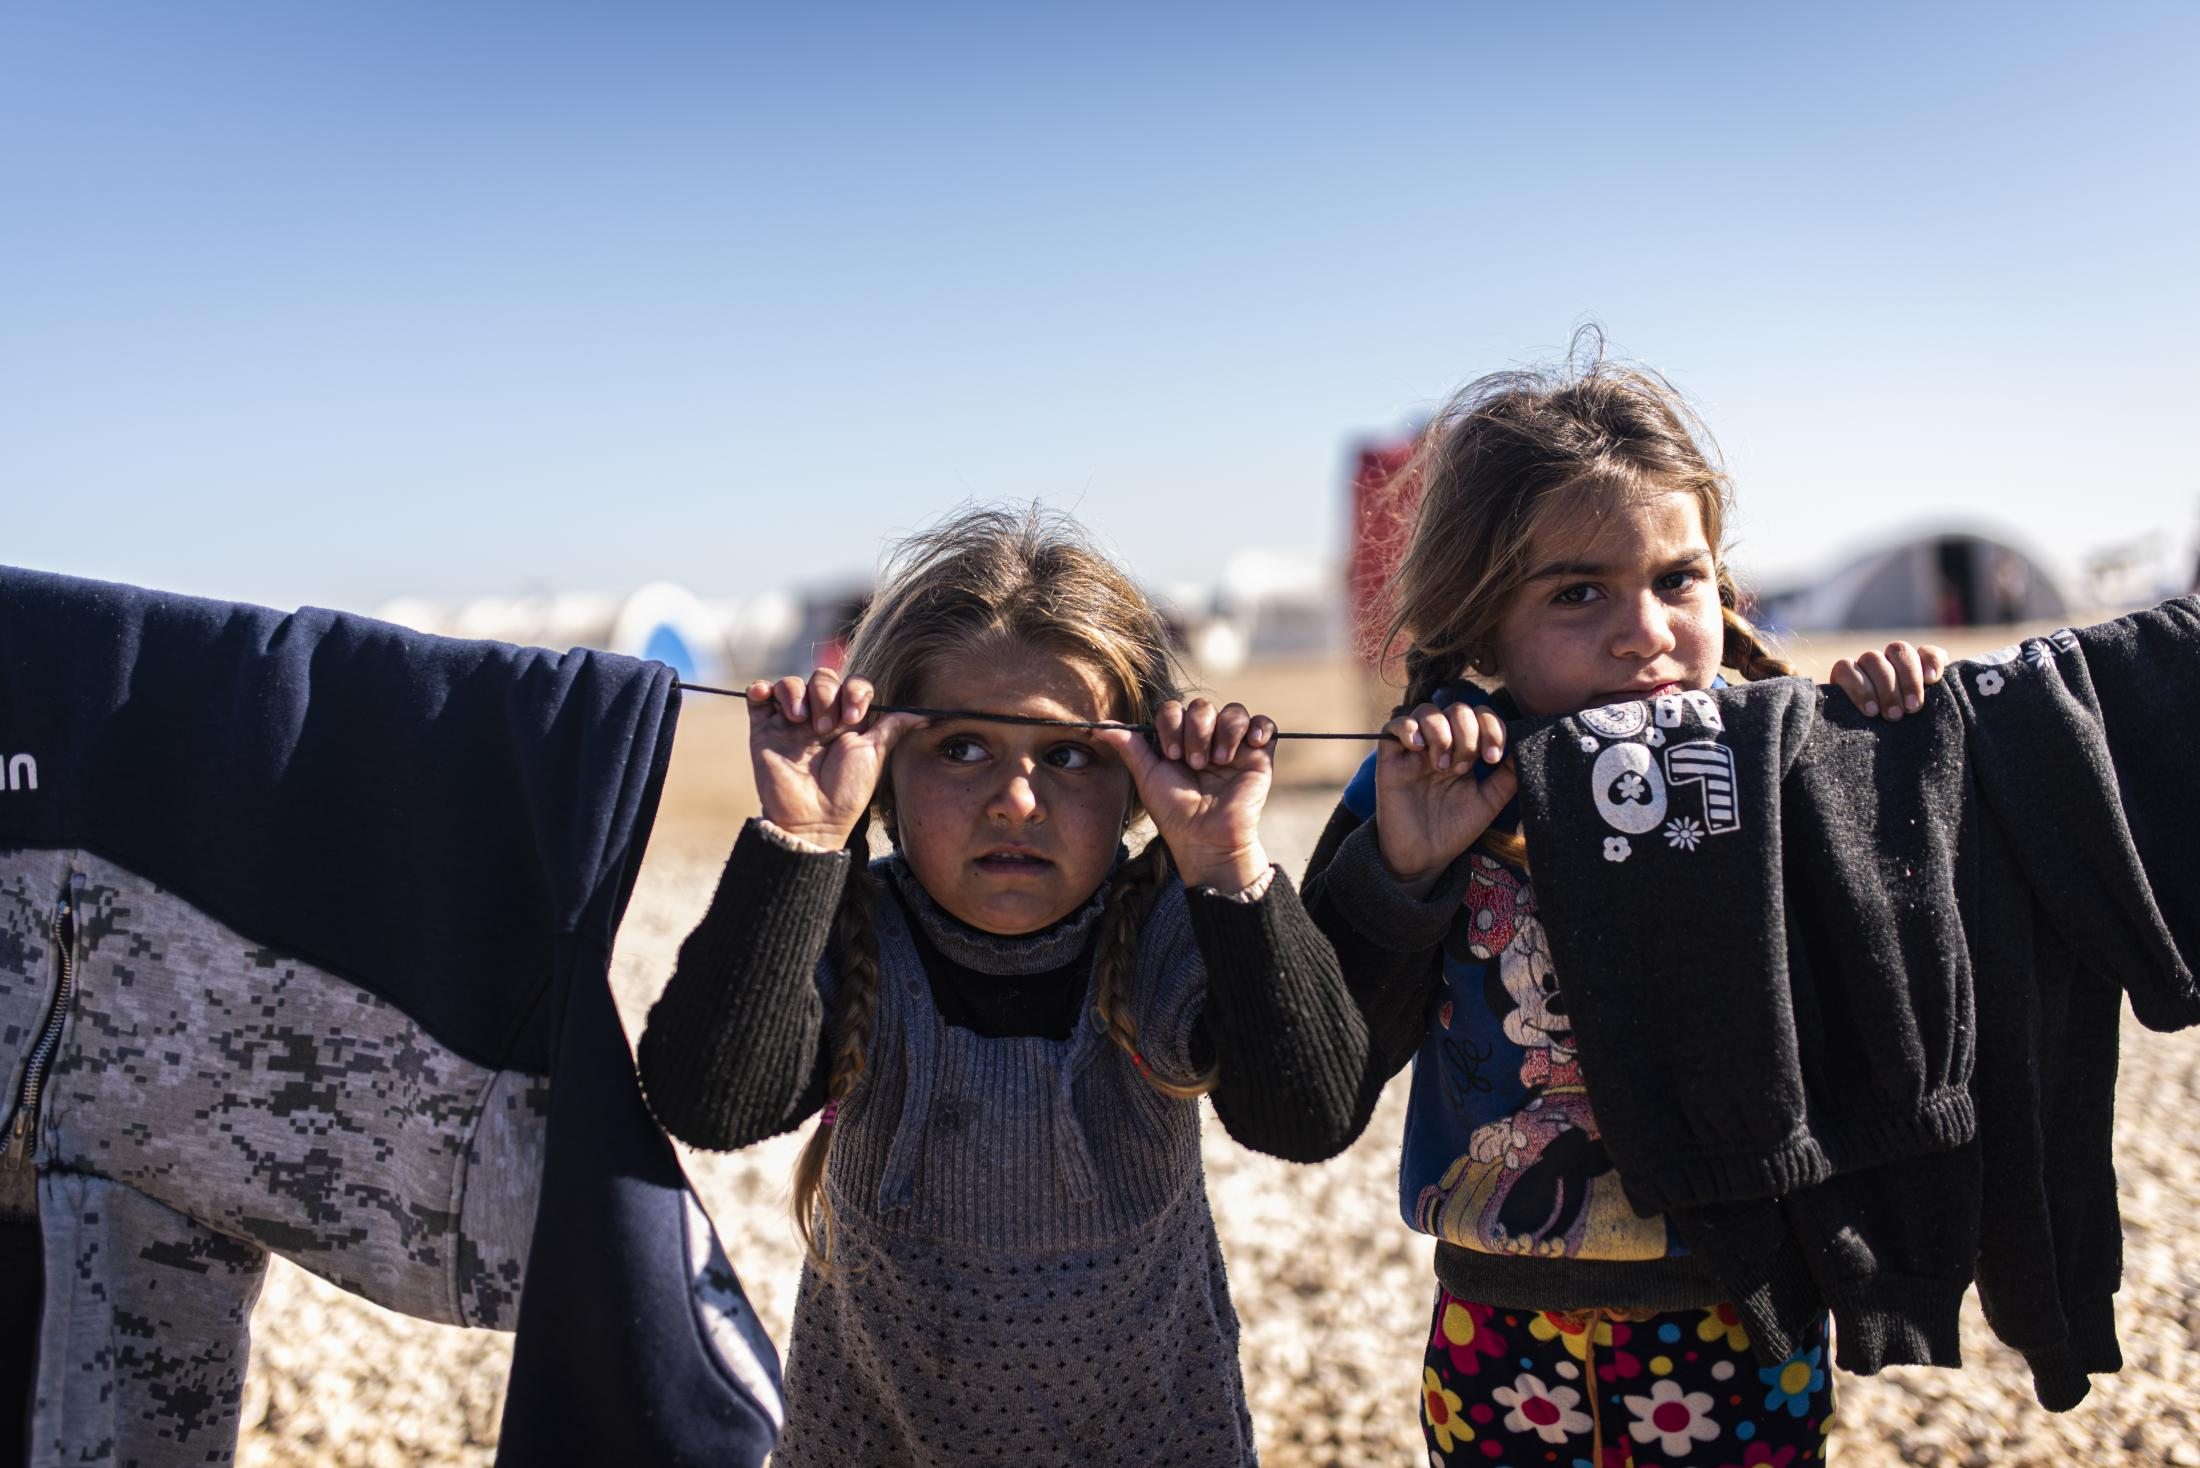 Children playing with a rope outside the tent of their family in the Washokani refugee camp. After the withdrawal of US troops from northern Syria in October 2019, Turkey launched an offensive against the predominantly Kurdish areas in the northeast of the country along Islamist forces. Calls for war crimes investigations into the conduct of Ankara-backed militias are mounting ever since. (Andoni Lubaki / Euskal Fondoa)